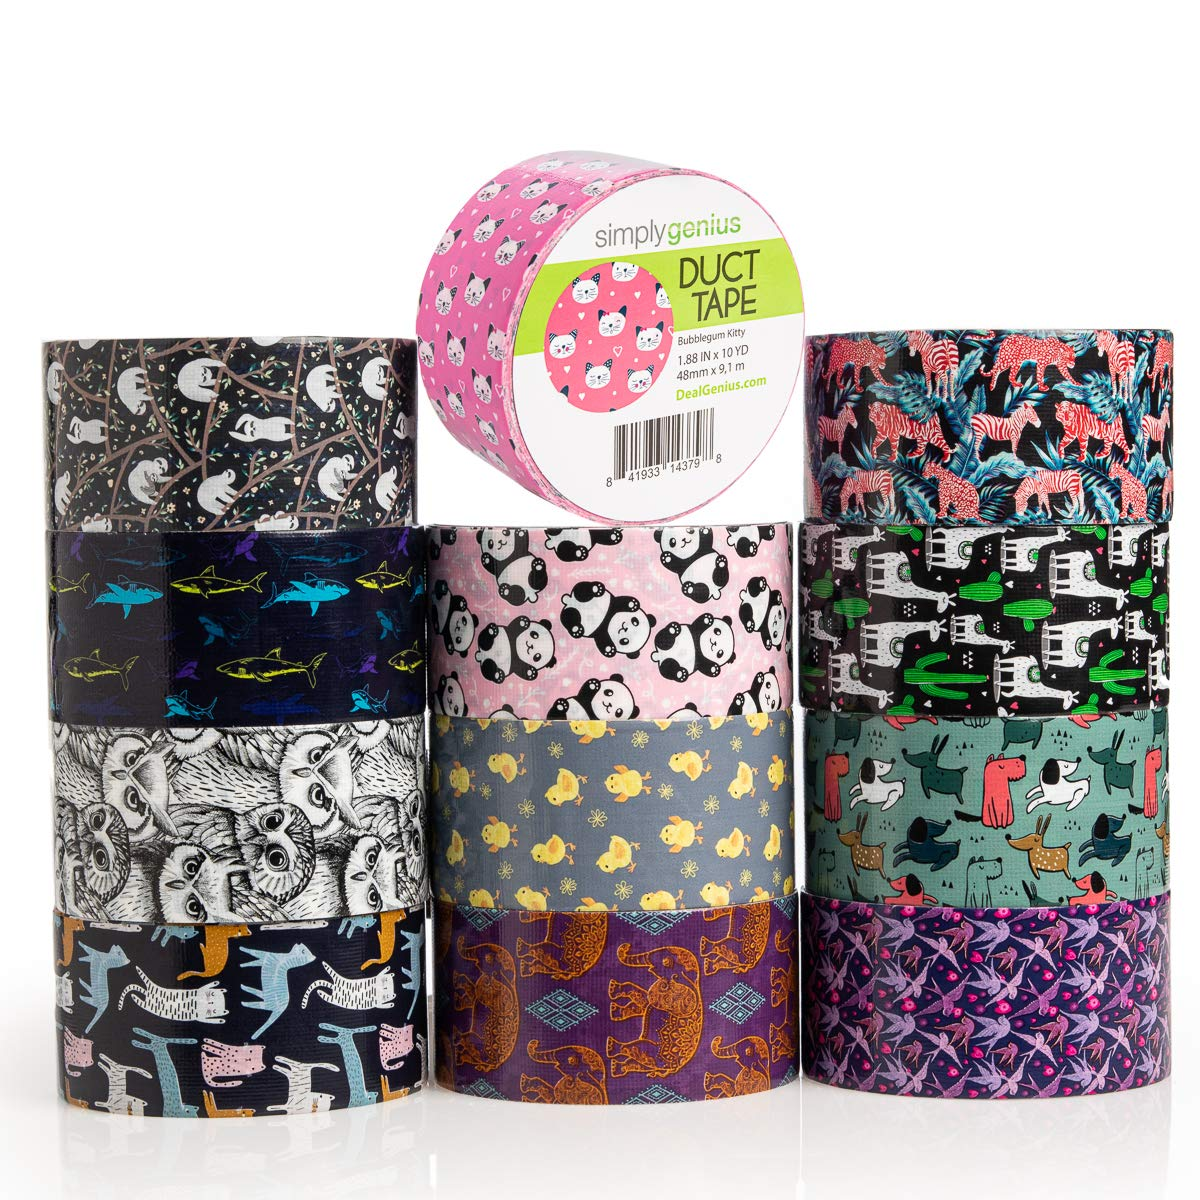 Simply Genius (12 Pack) Patterned and Colored Duct Tape Variety Pack Tape Rolls Craft Supplies for Kids Adults Patterned Duct Tape Colors, Animal Patterns